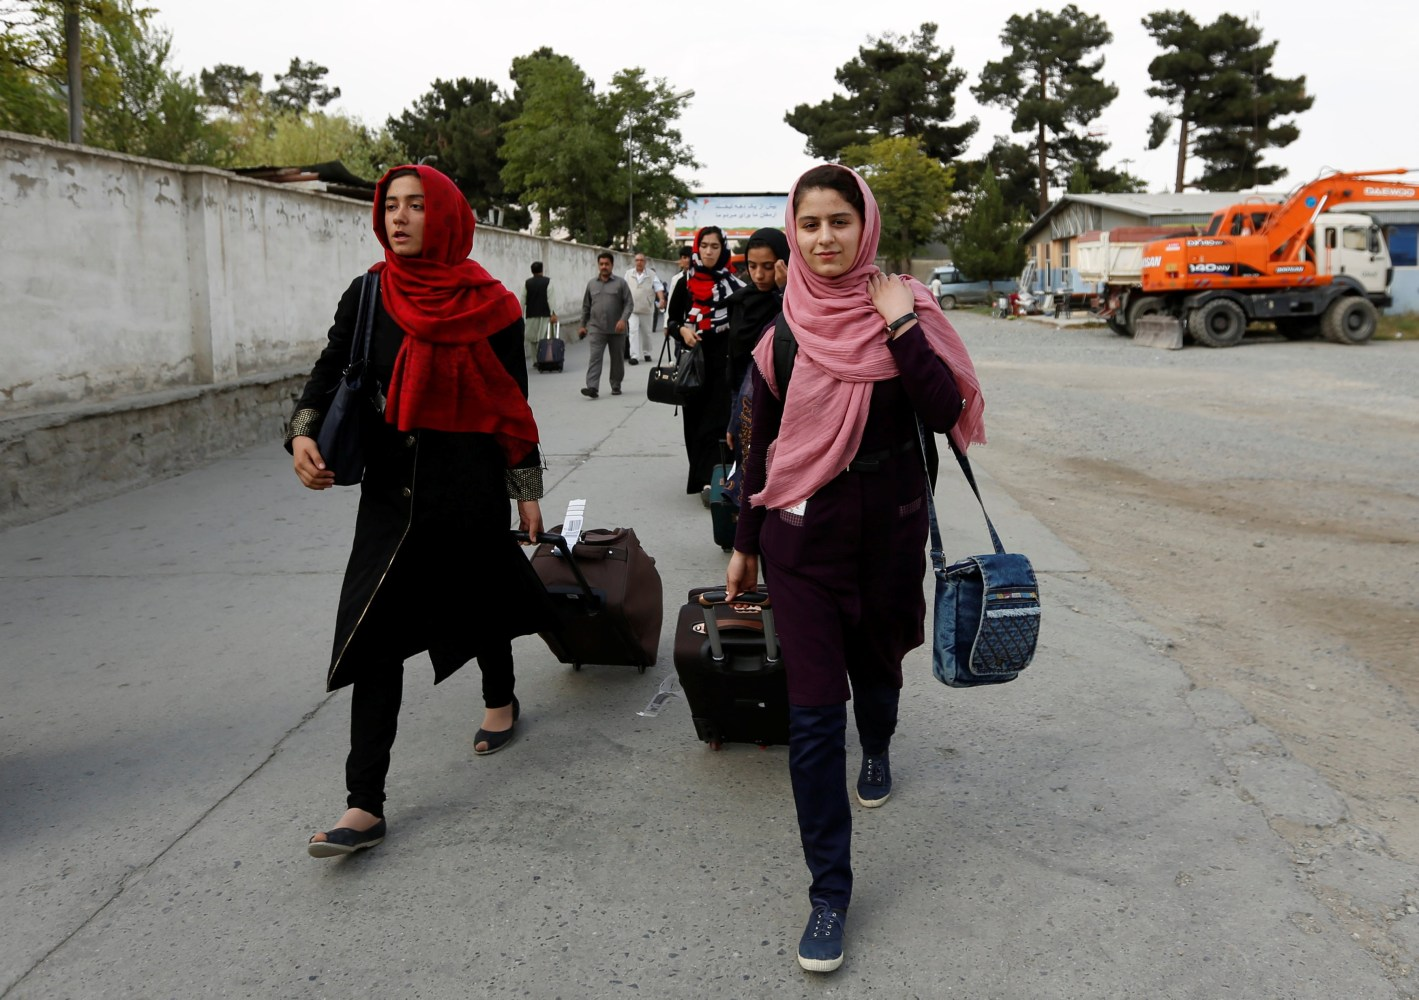 Afghan Girls Robotics Team Allowed To Enter US For Competition